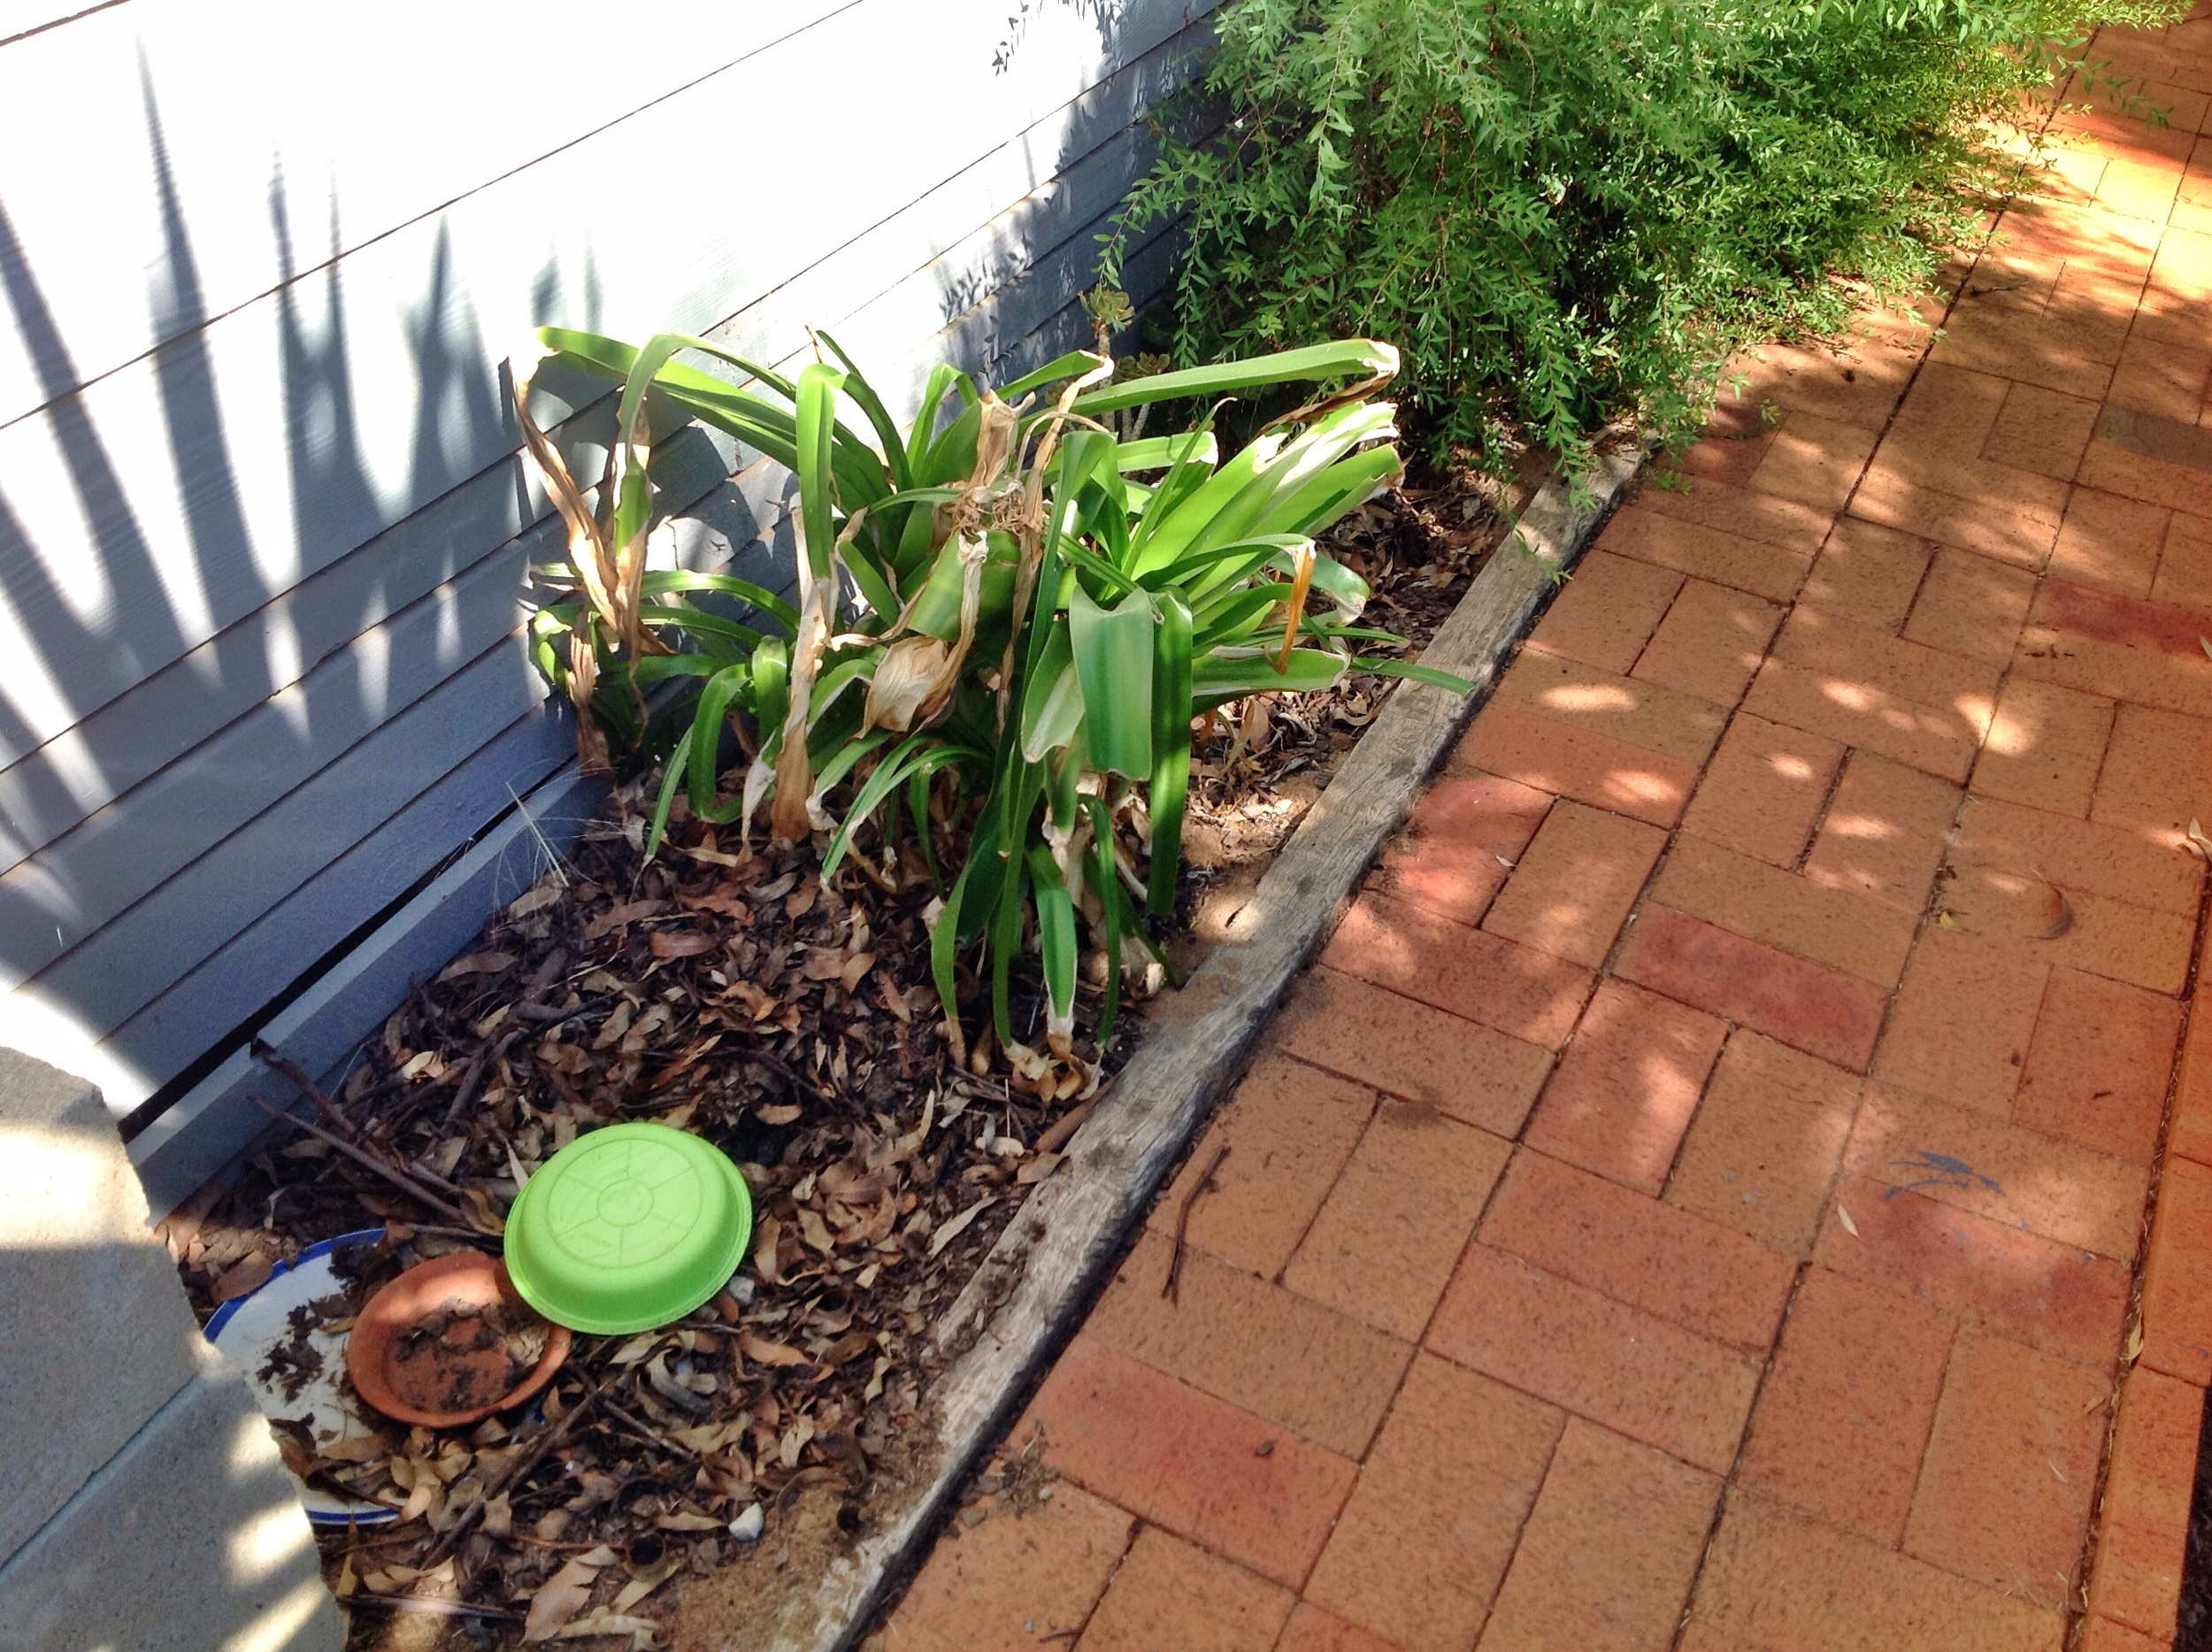 This garden area not only restricts access to the subfloor, but the plants and decaying organic matter is like a billboard inviting the termites in!